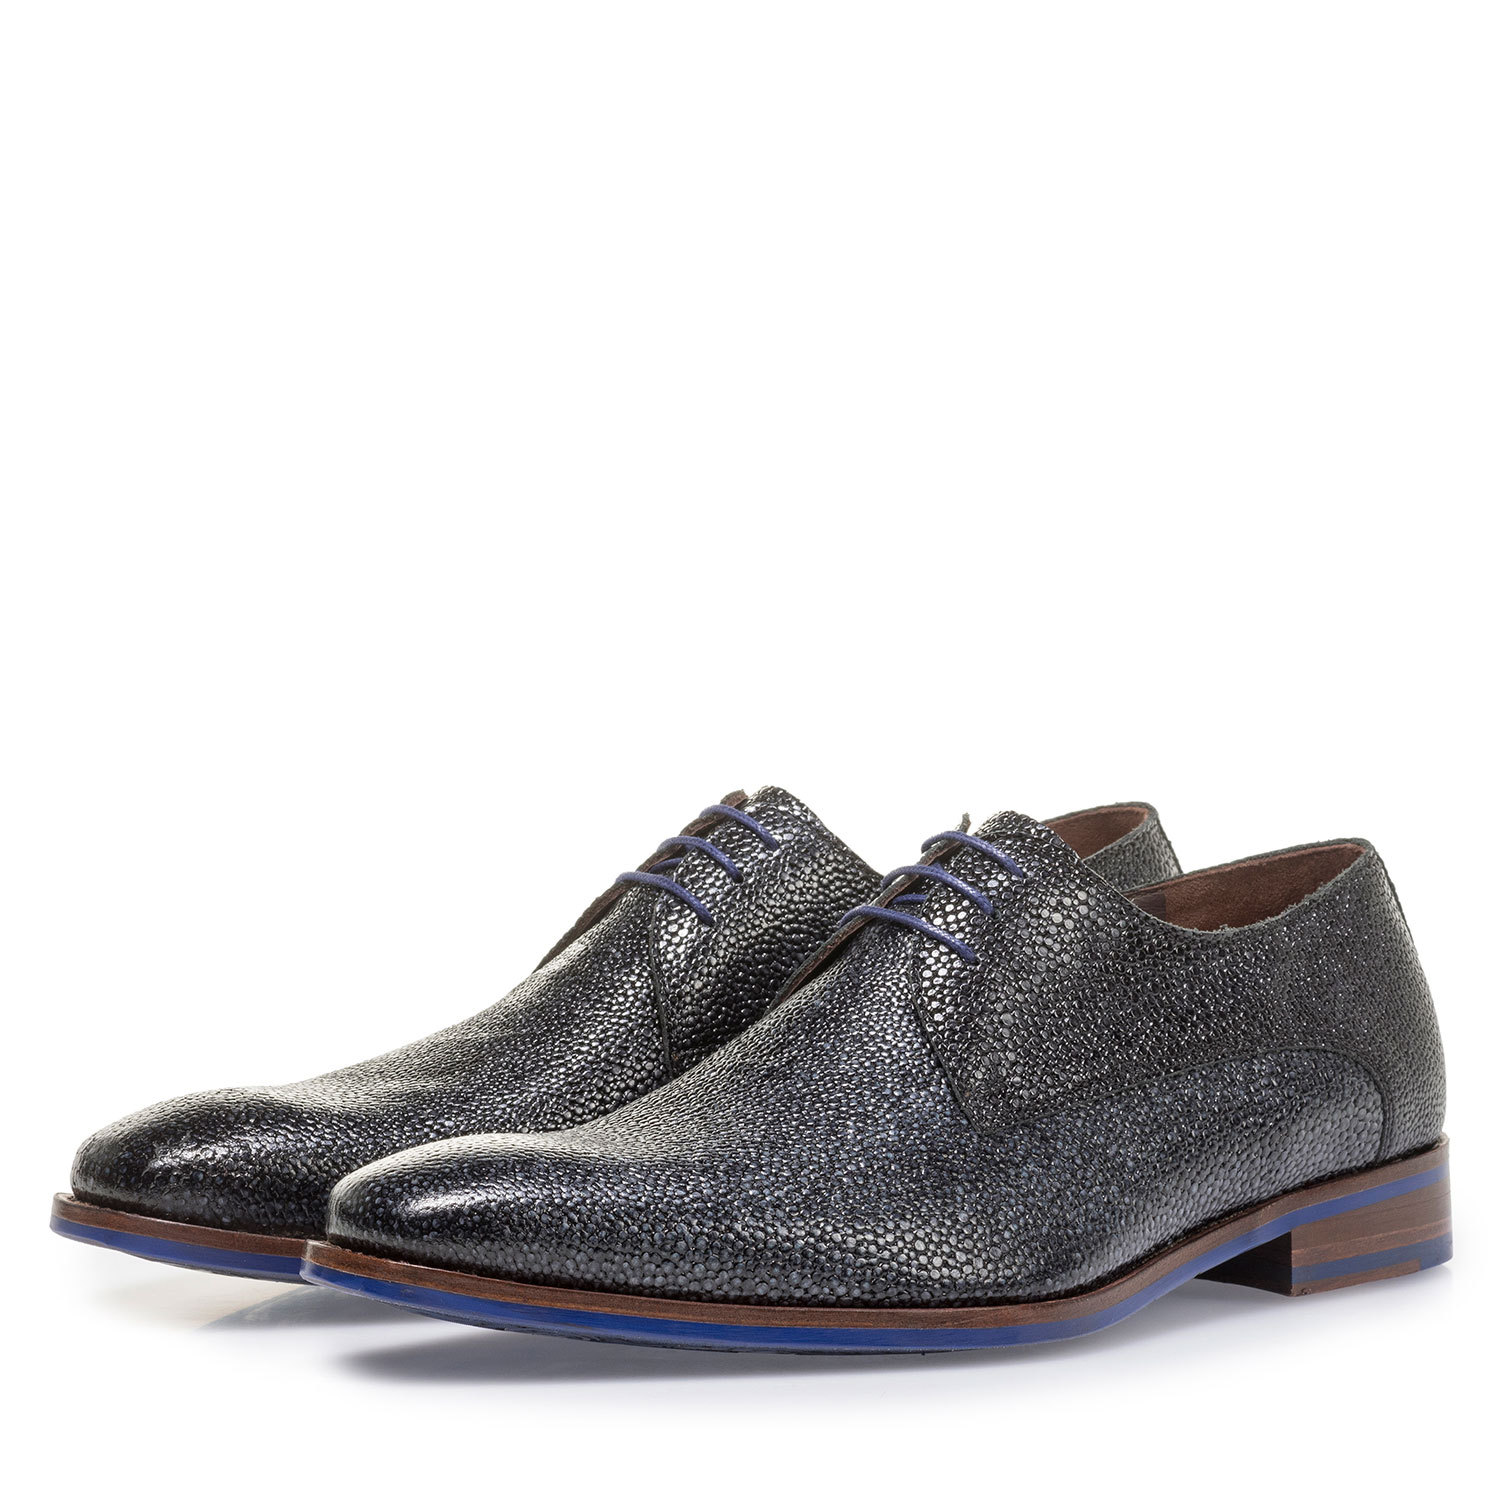 18159/23 - Blue leather lace shoe with metallic print